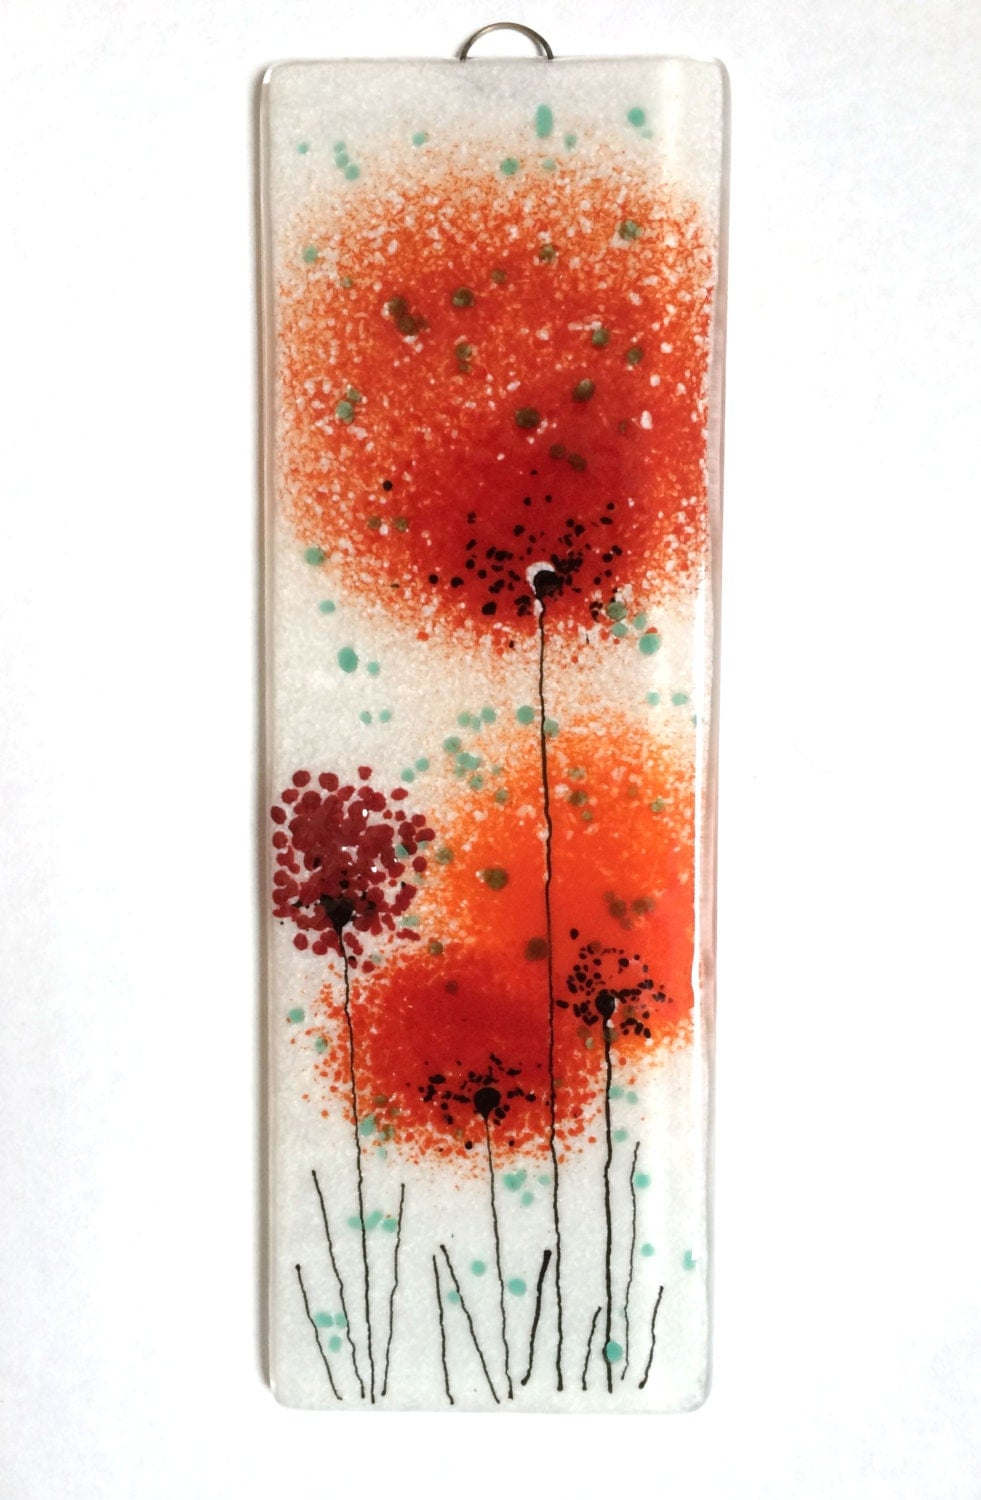 Wall Art Fused Glass : Fused glass wall art poppy red flower